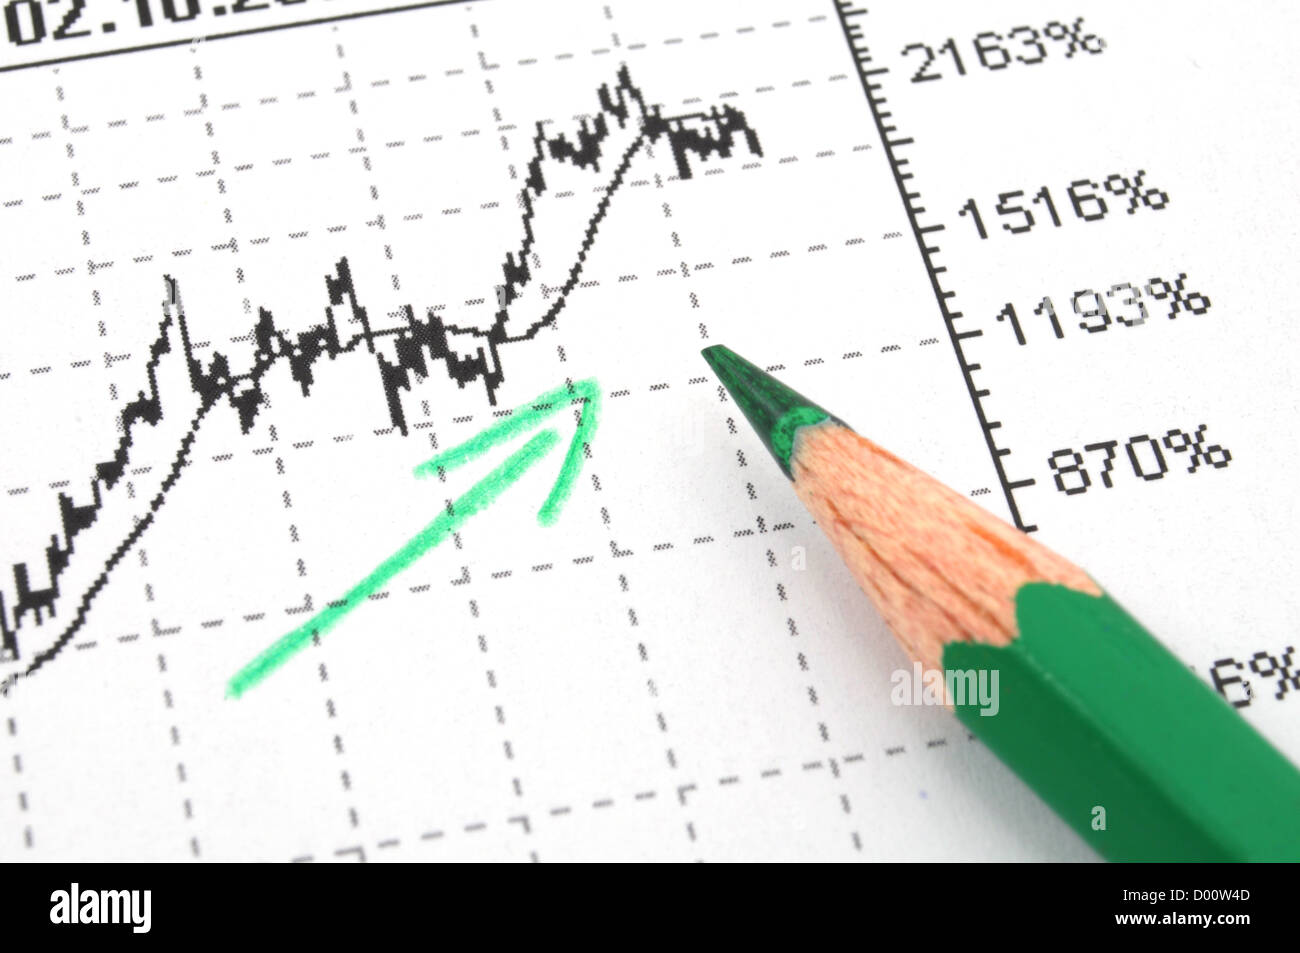 financial success concept with business chart diagram or graph showing growth - Stock Image